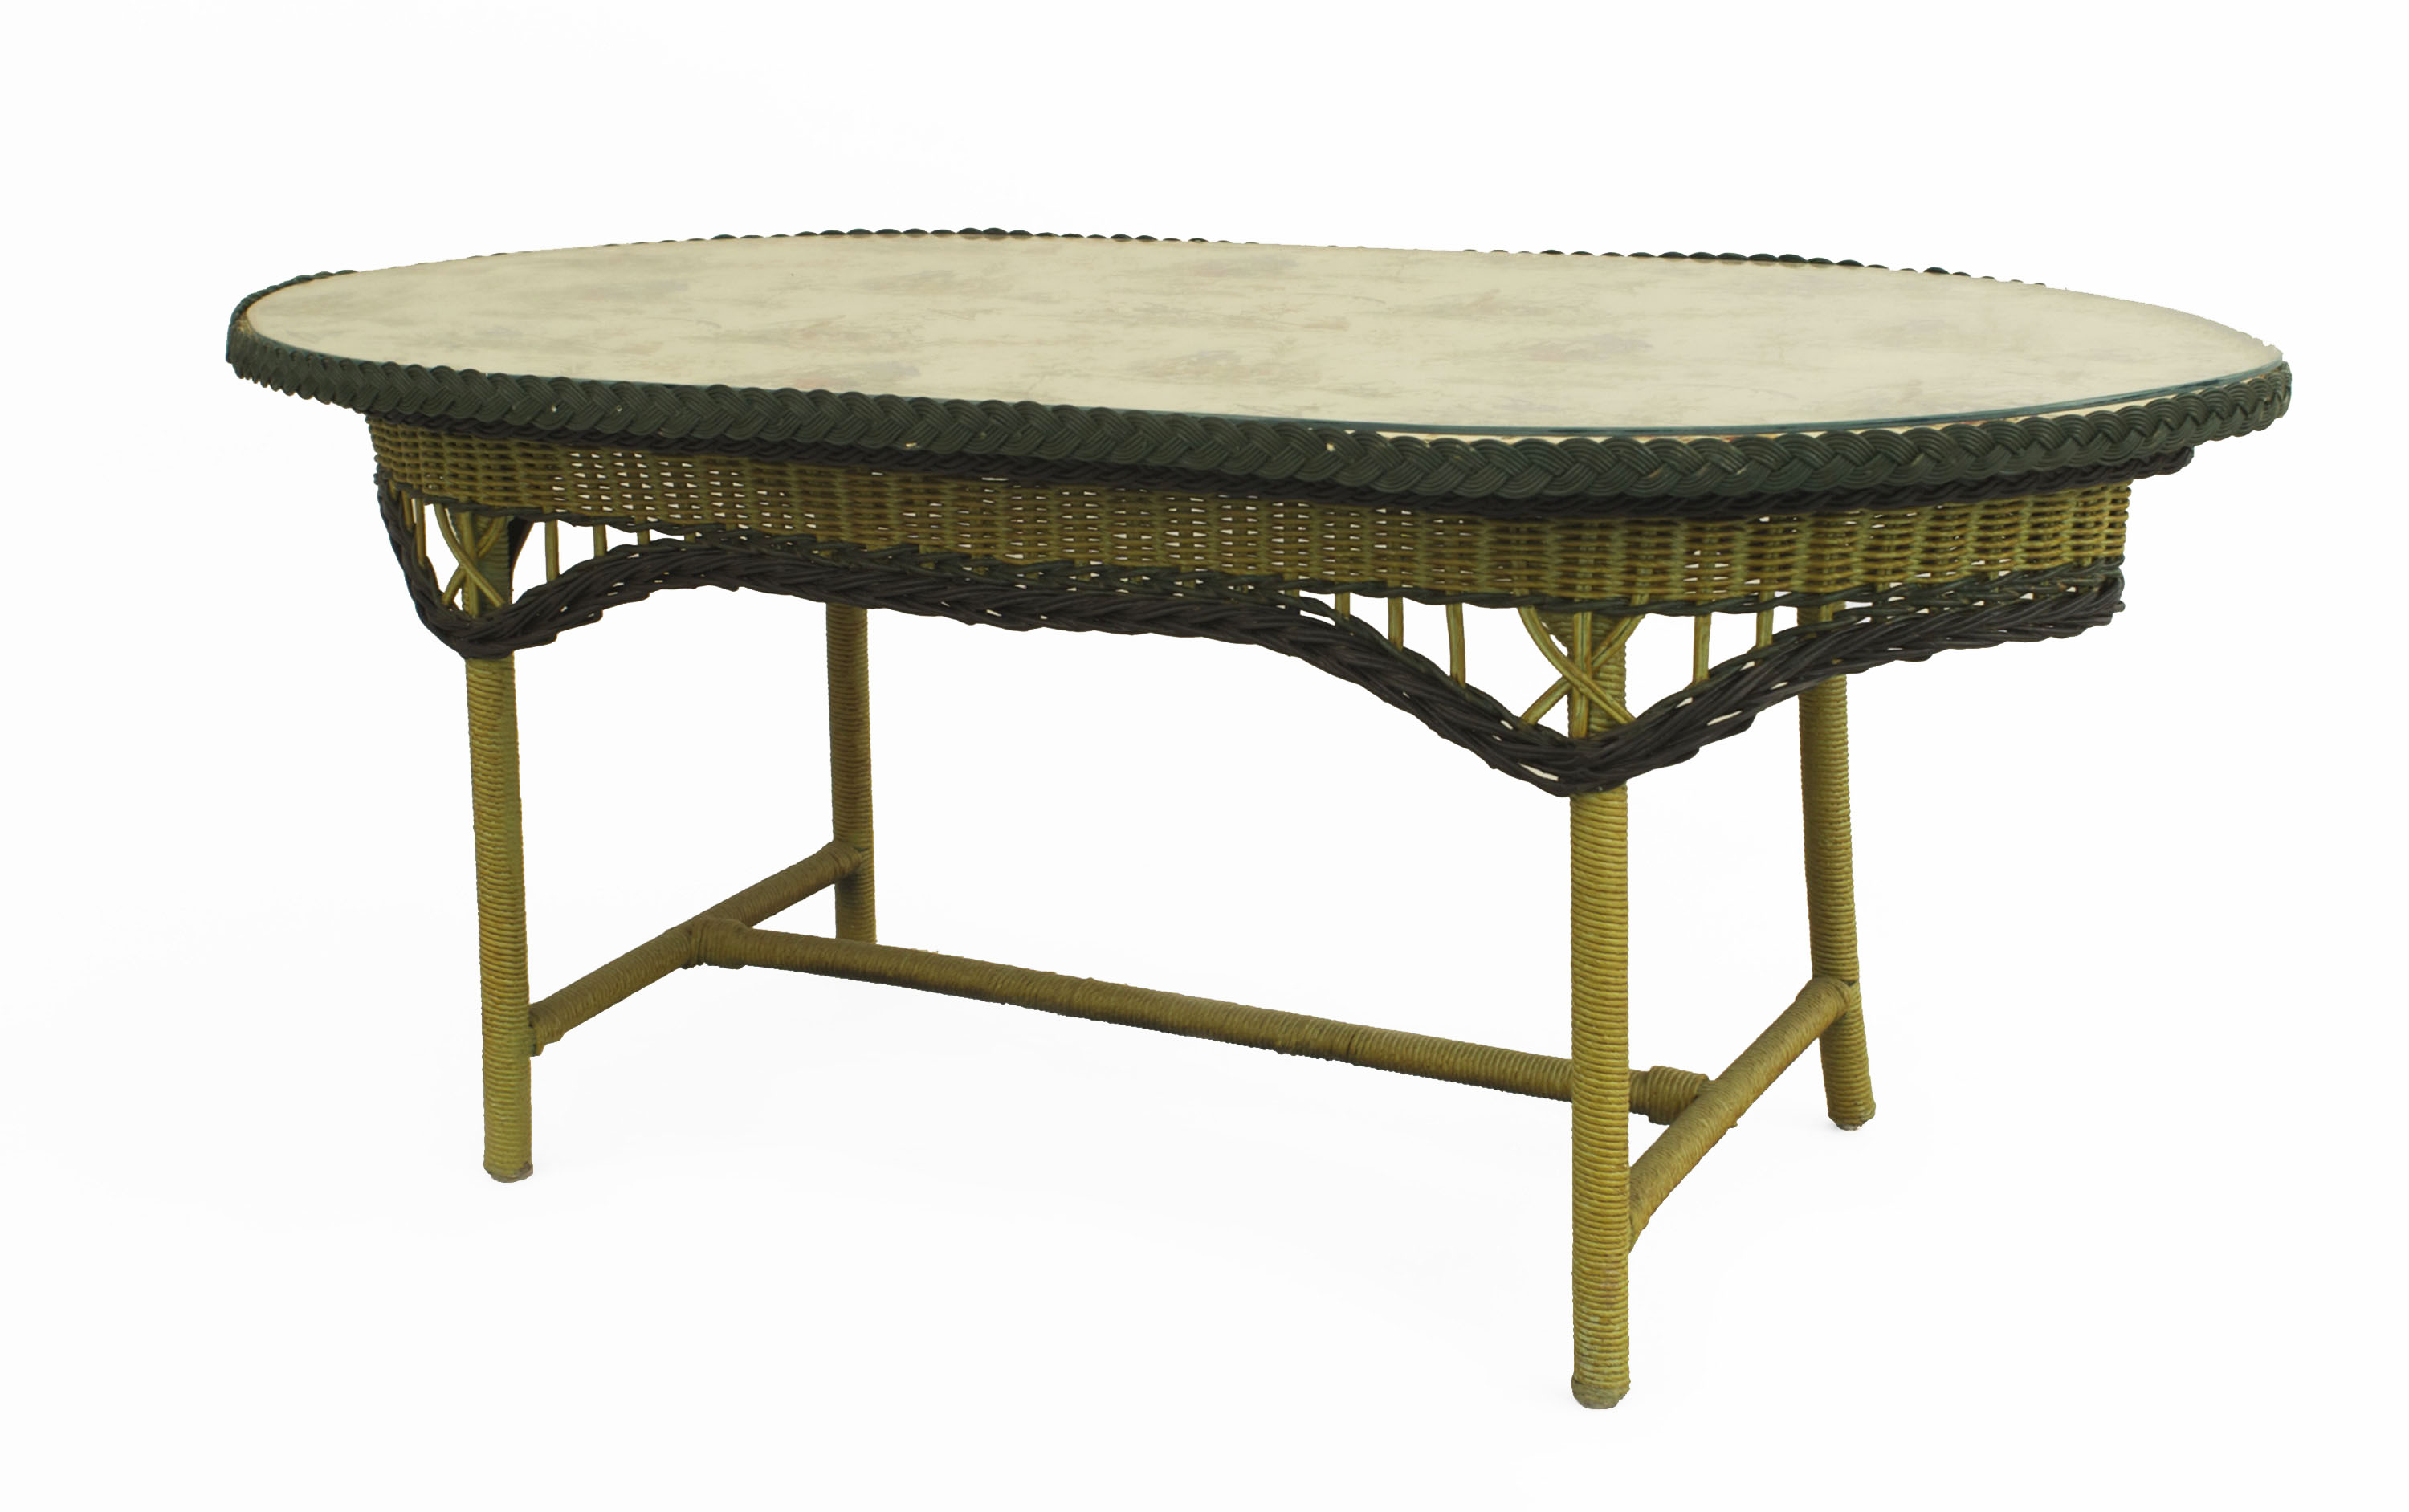 American Art Deco wicker coffee table painted green and yellow with ...